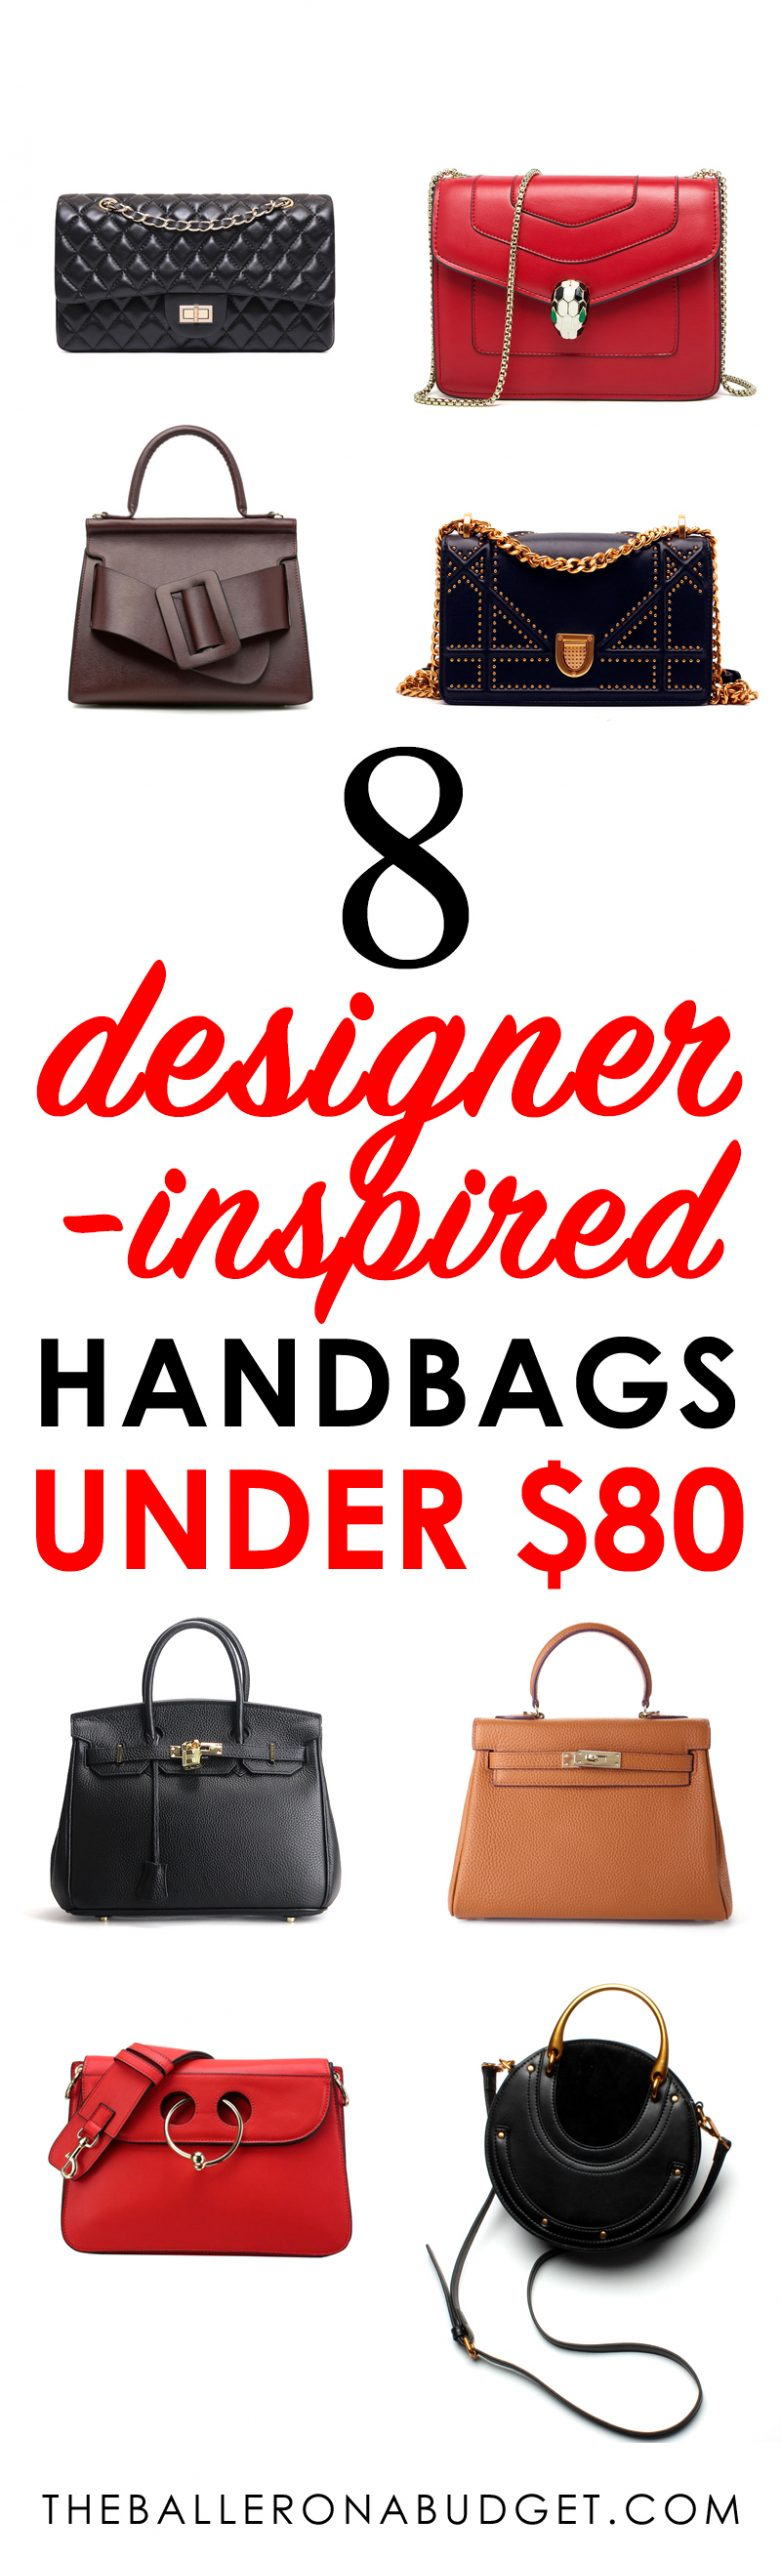 Looking for the top trending designer handbags of the season? Here are the 8 of the most coveted along with designer-inspired bags under $80 each - both genuine leather and vegan synthetic options included! - www.theballeronabudget.com